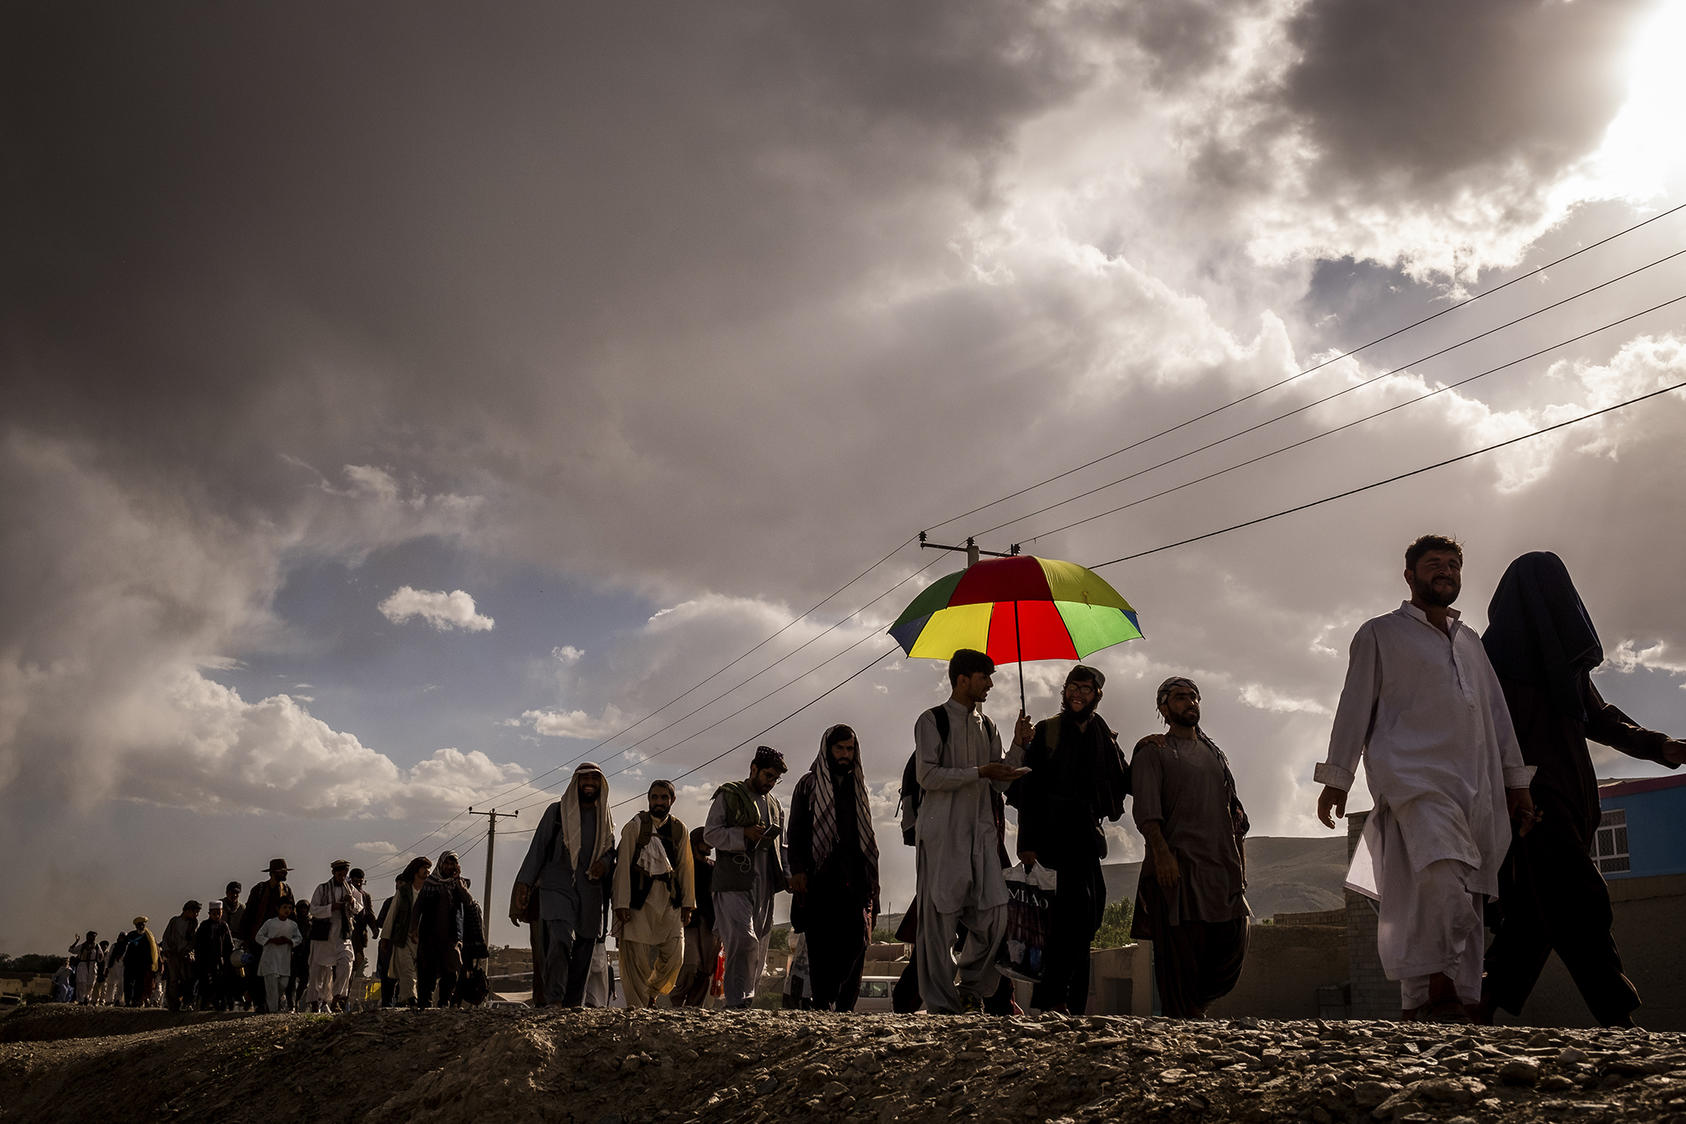 Members of the peace march walk to the edge of Ghazni, Afghanistan on June 11, 2018. (Jim Huylebroek/The New York Times)